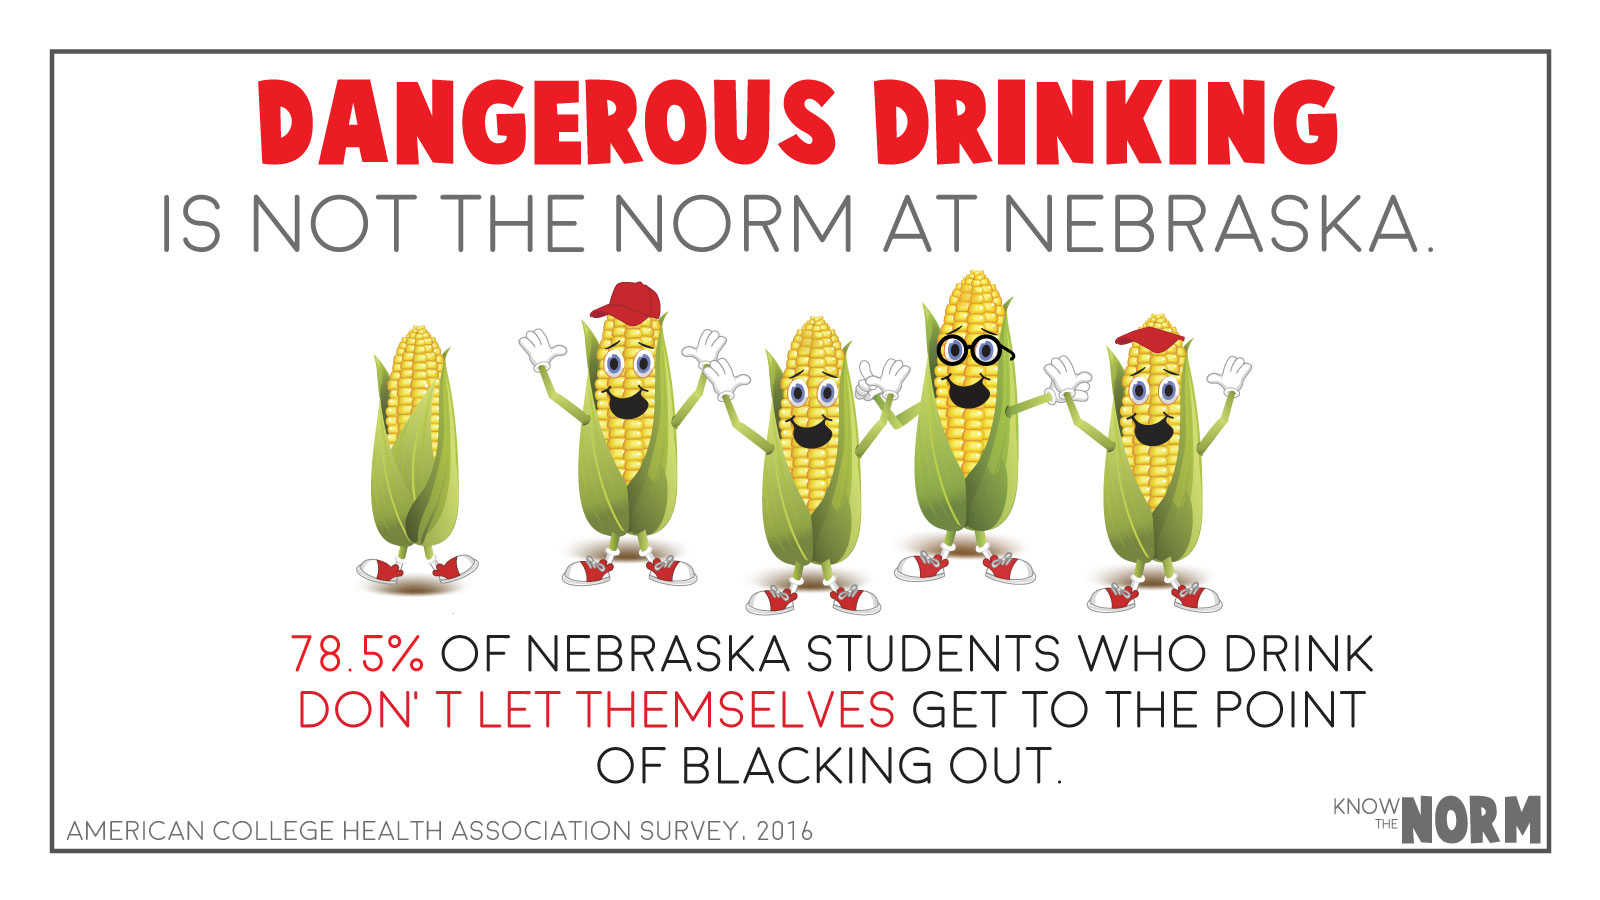 Dangerous drinking is not the norm at Nebraska